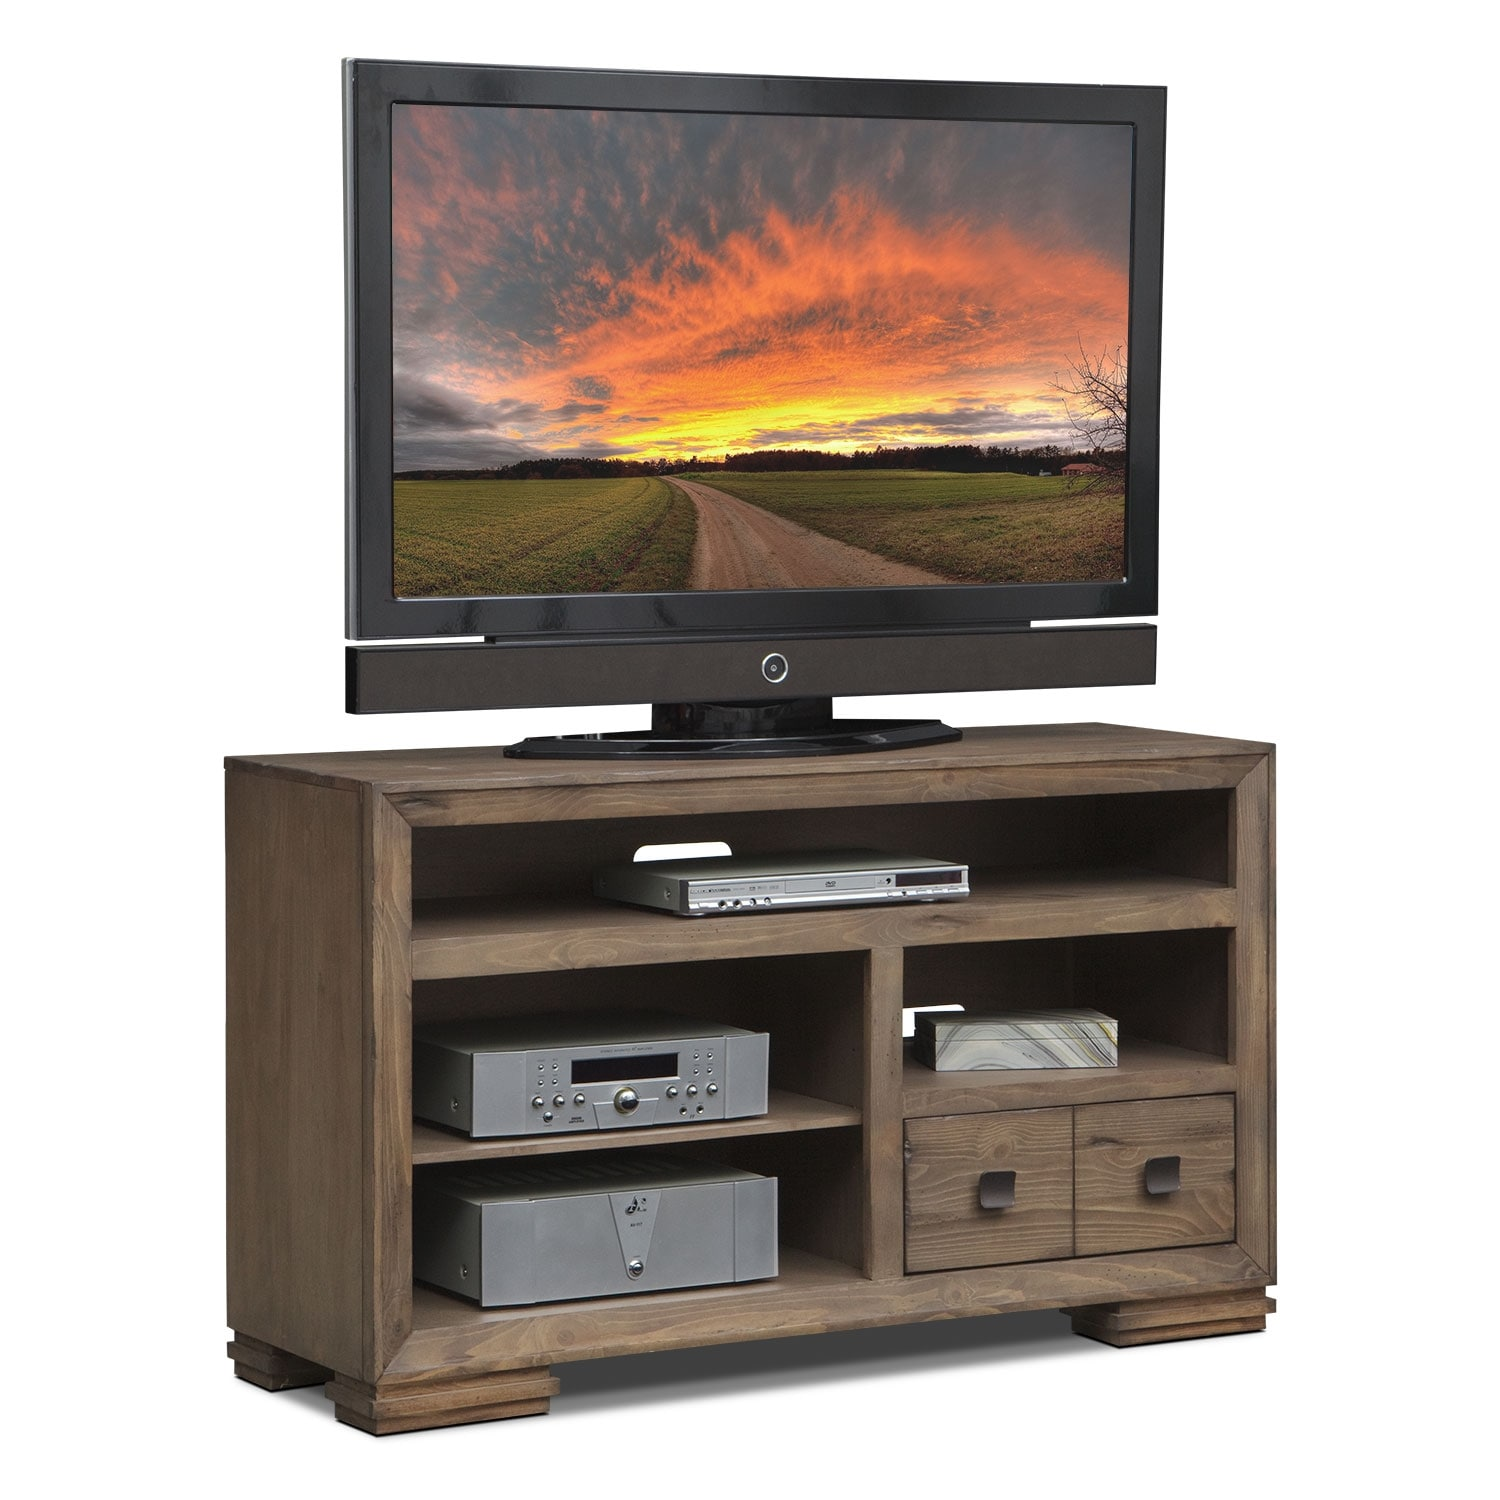 "Mesa 54"" TV Stand - Distressed Pine"